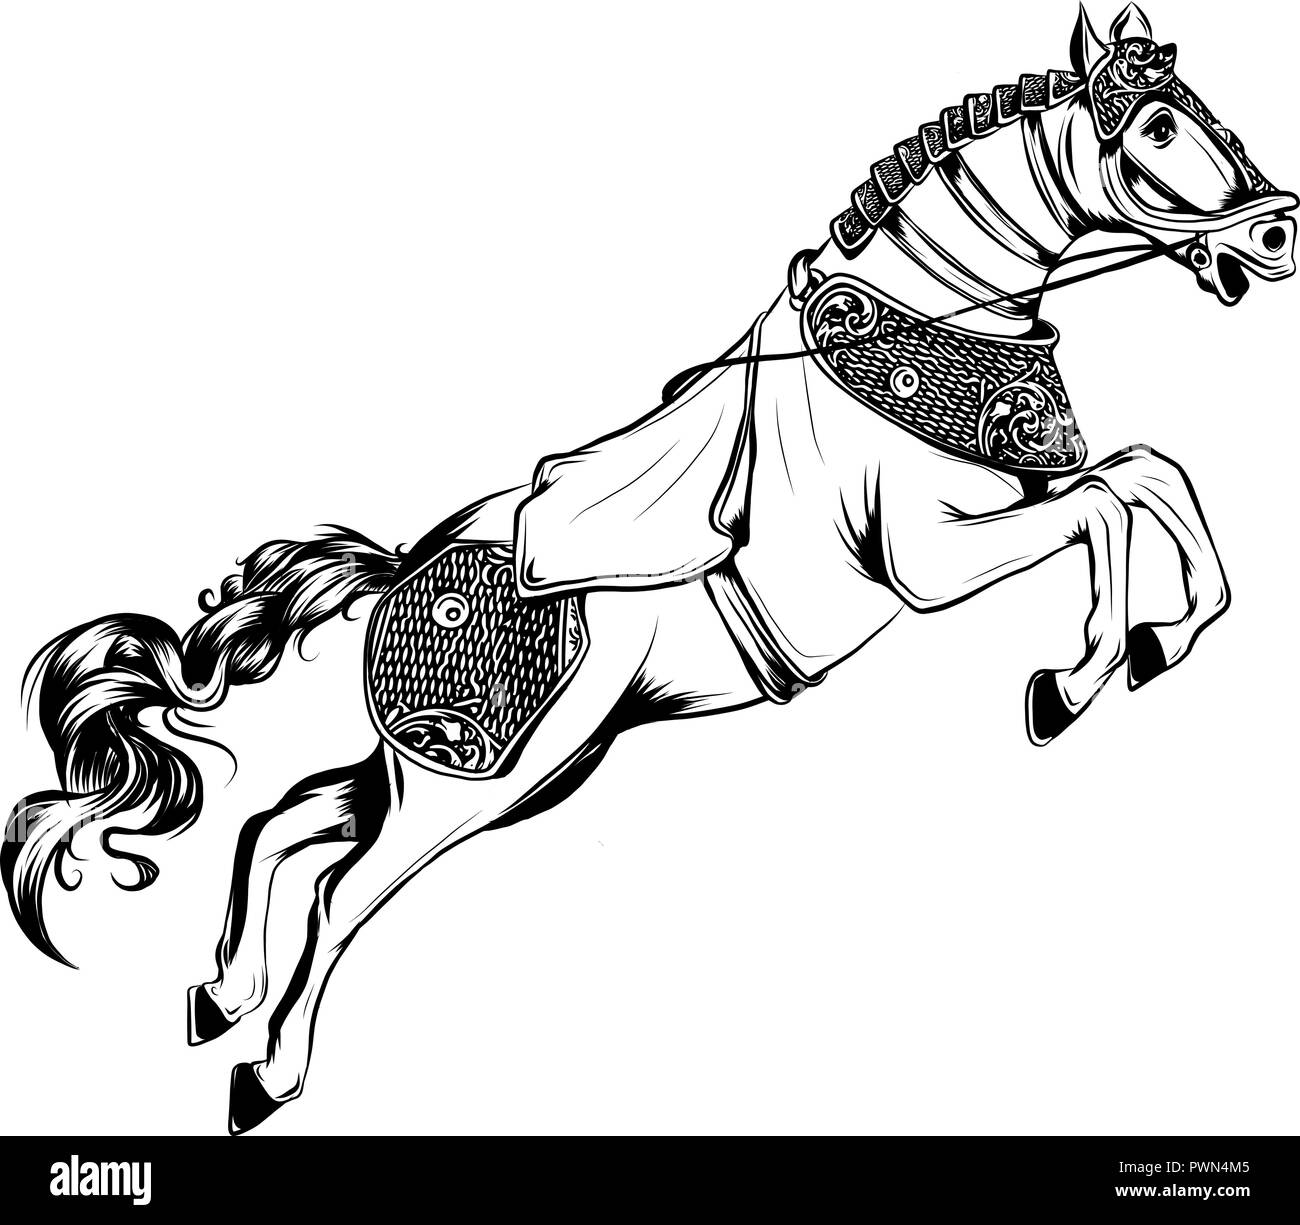 Vector Illustration Of Silhouette Of The Running Horse In White Background Stock Vector Image Art Alamy